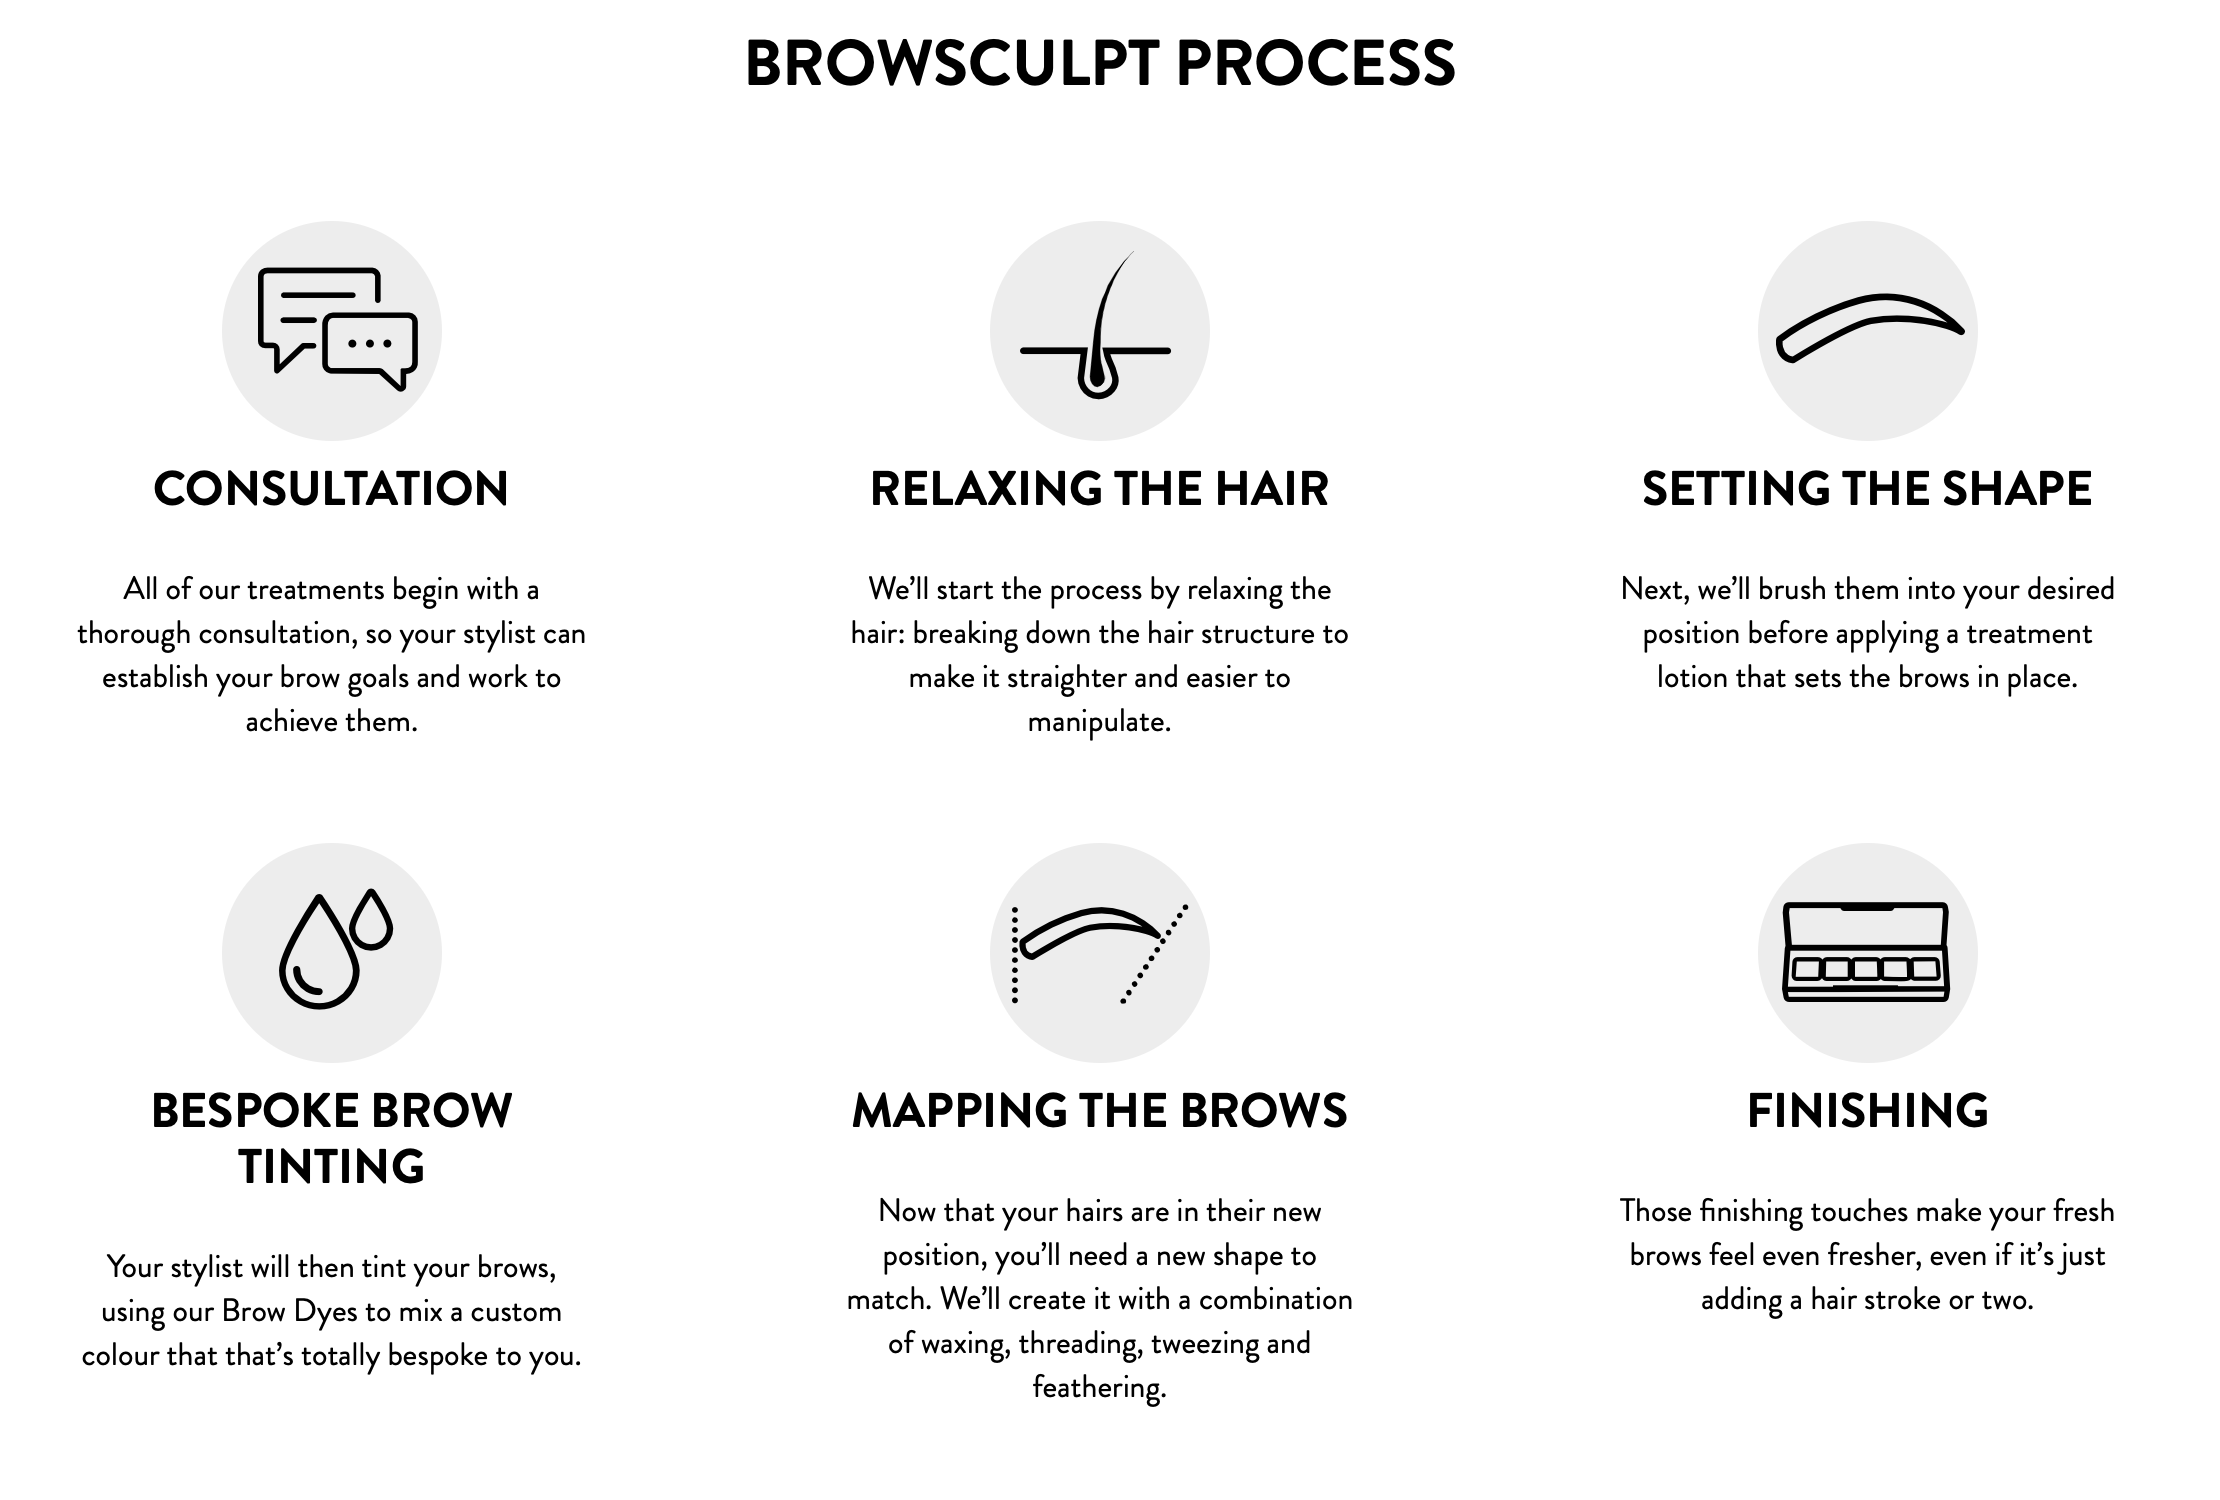 HD Brow Sculpt